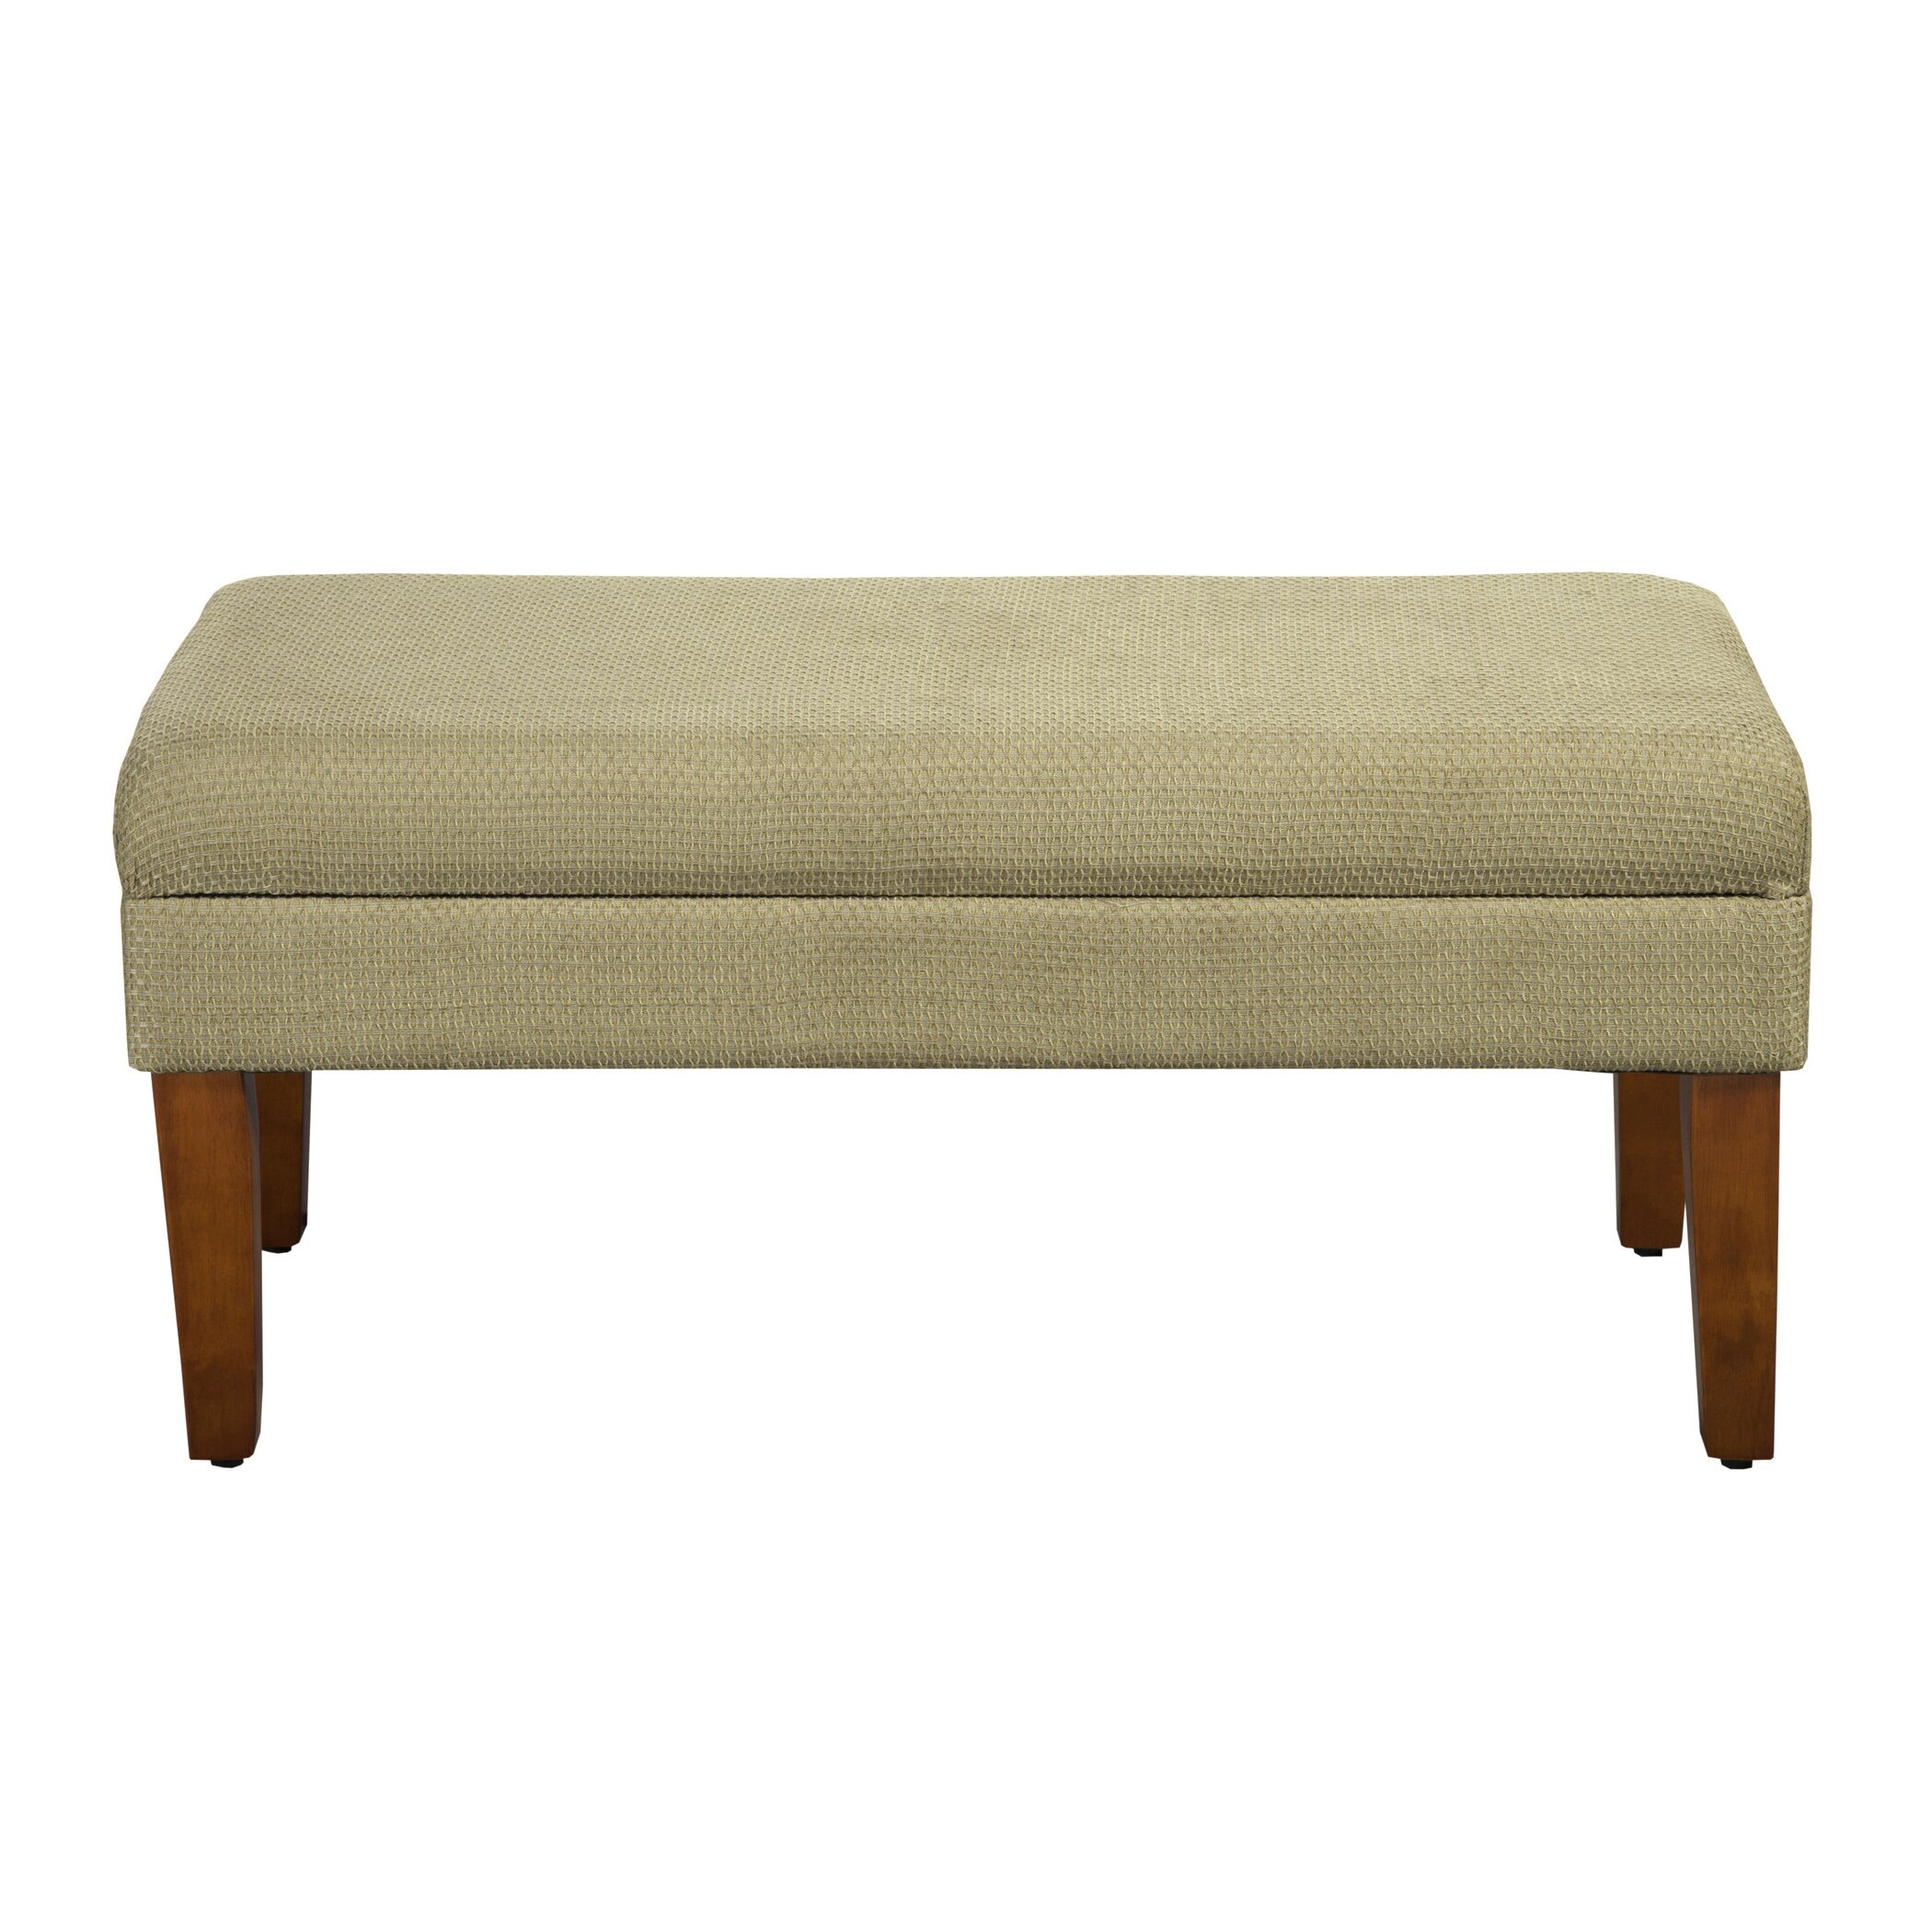 Homepop kinfine decorative upholstered bench reviews wayfair Decorative benches